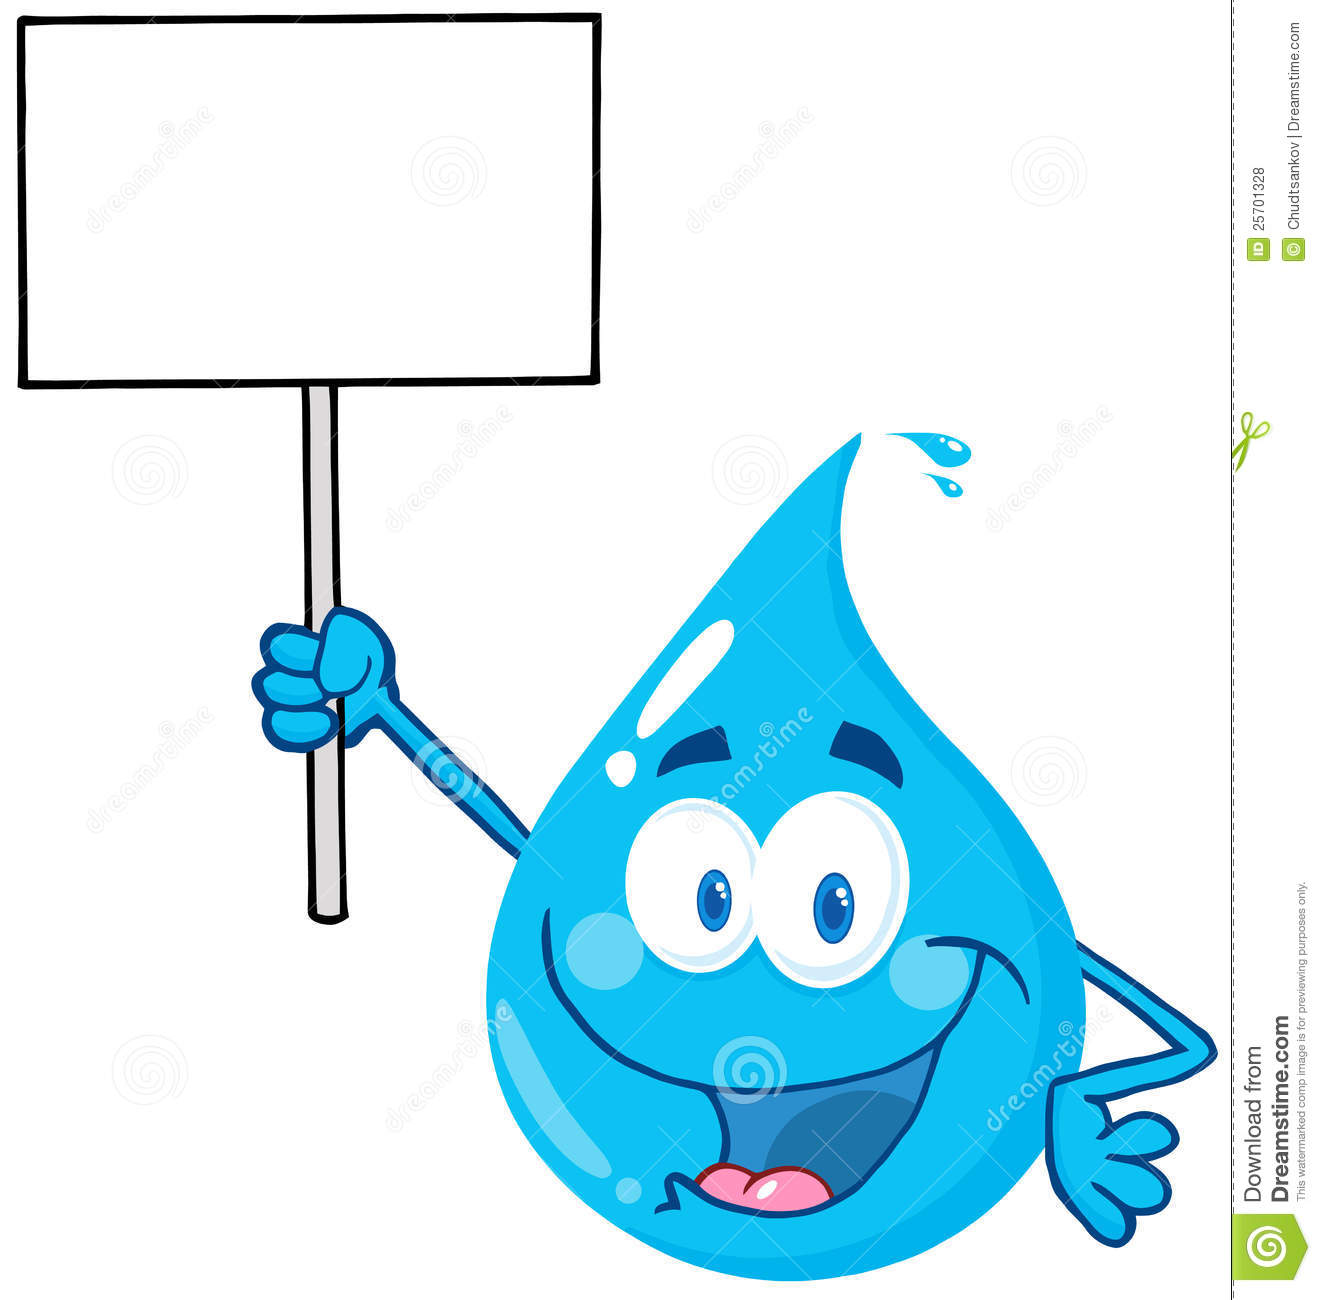 Free water clipart images graphic freeuse stock Water Clipart | Free download best Water Clipart on ClipArtMag.com graphic freeuse stock